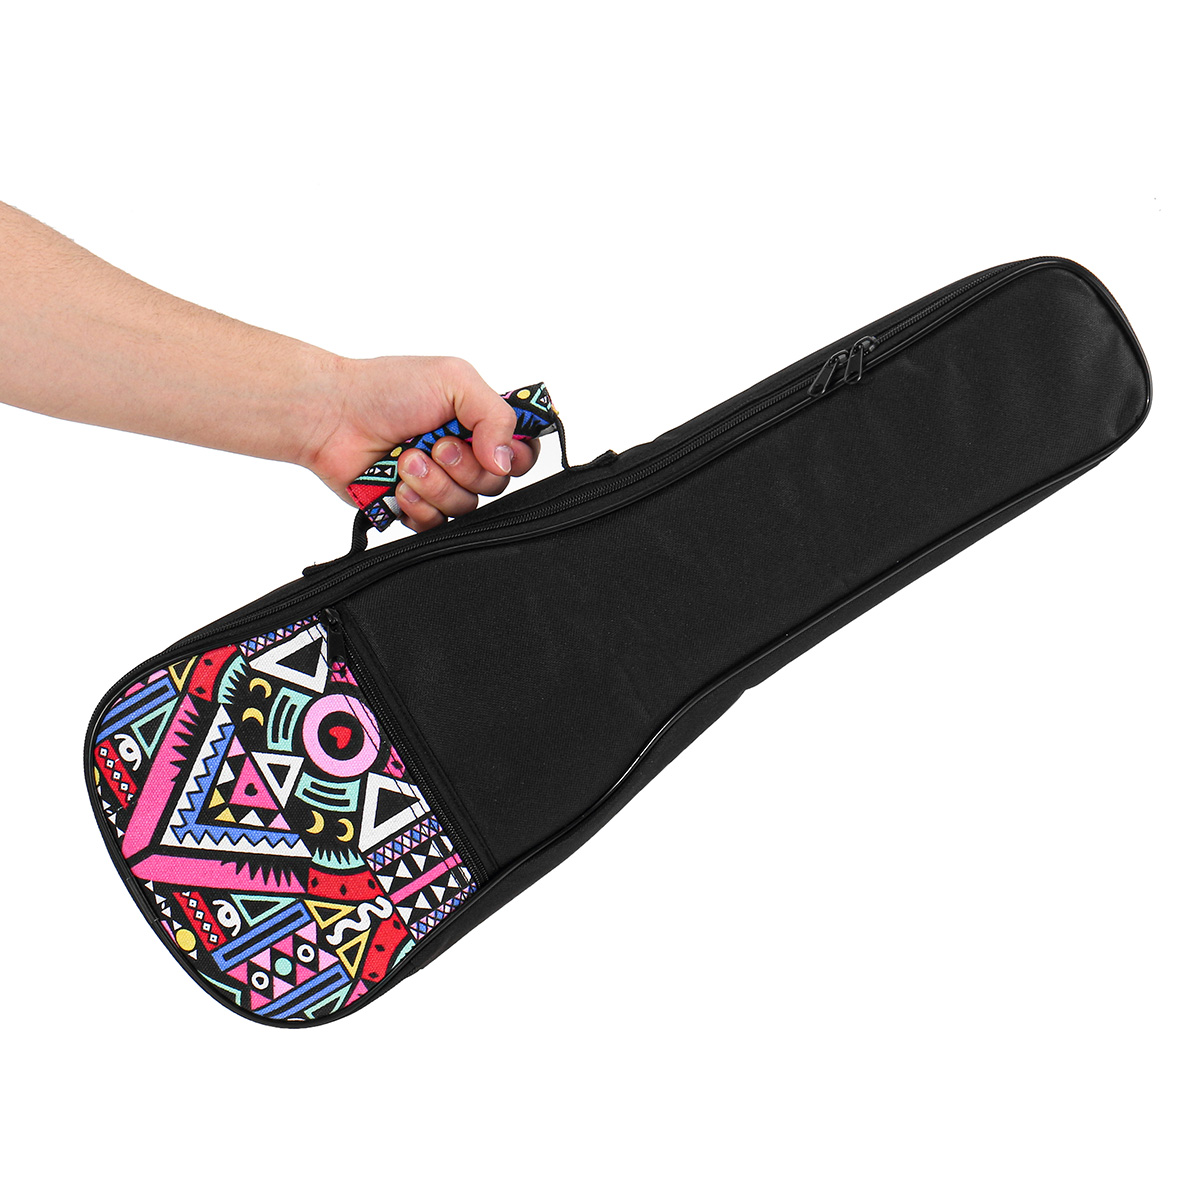 Portable Ukulele Bag Instrument Padded Gig Carry Bag Concert Carry Case Cover For Ukulele Guitar Parts Accessories 21/23/26 Inch